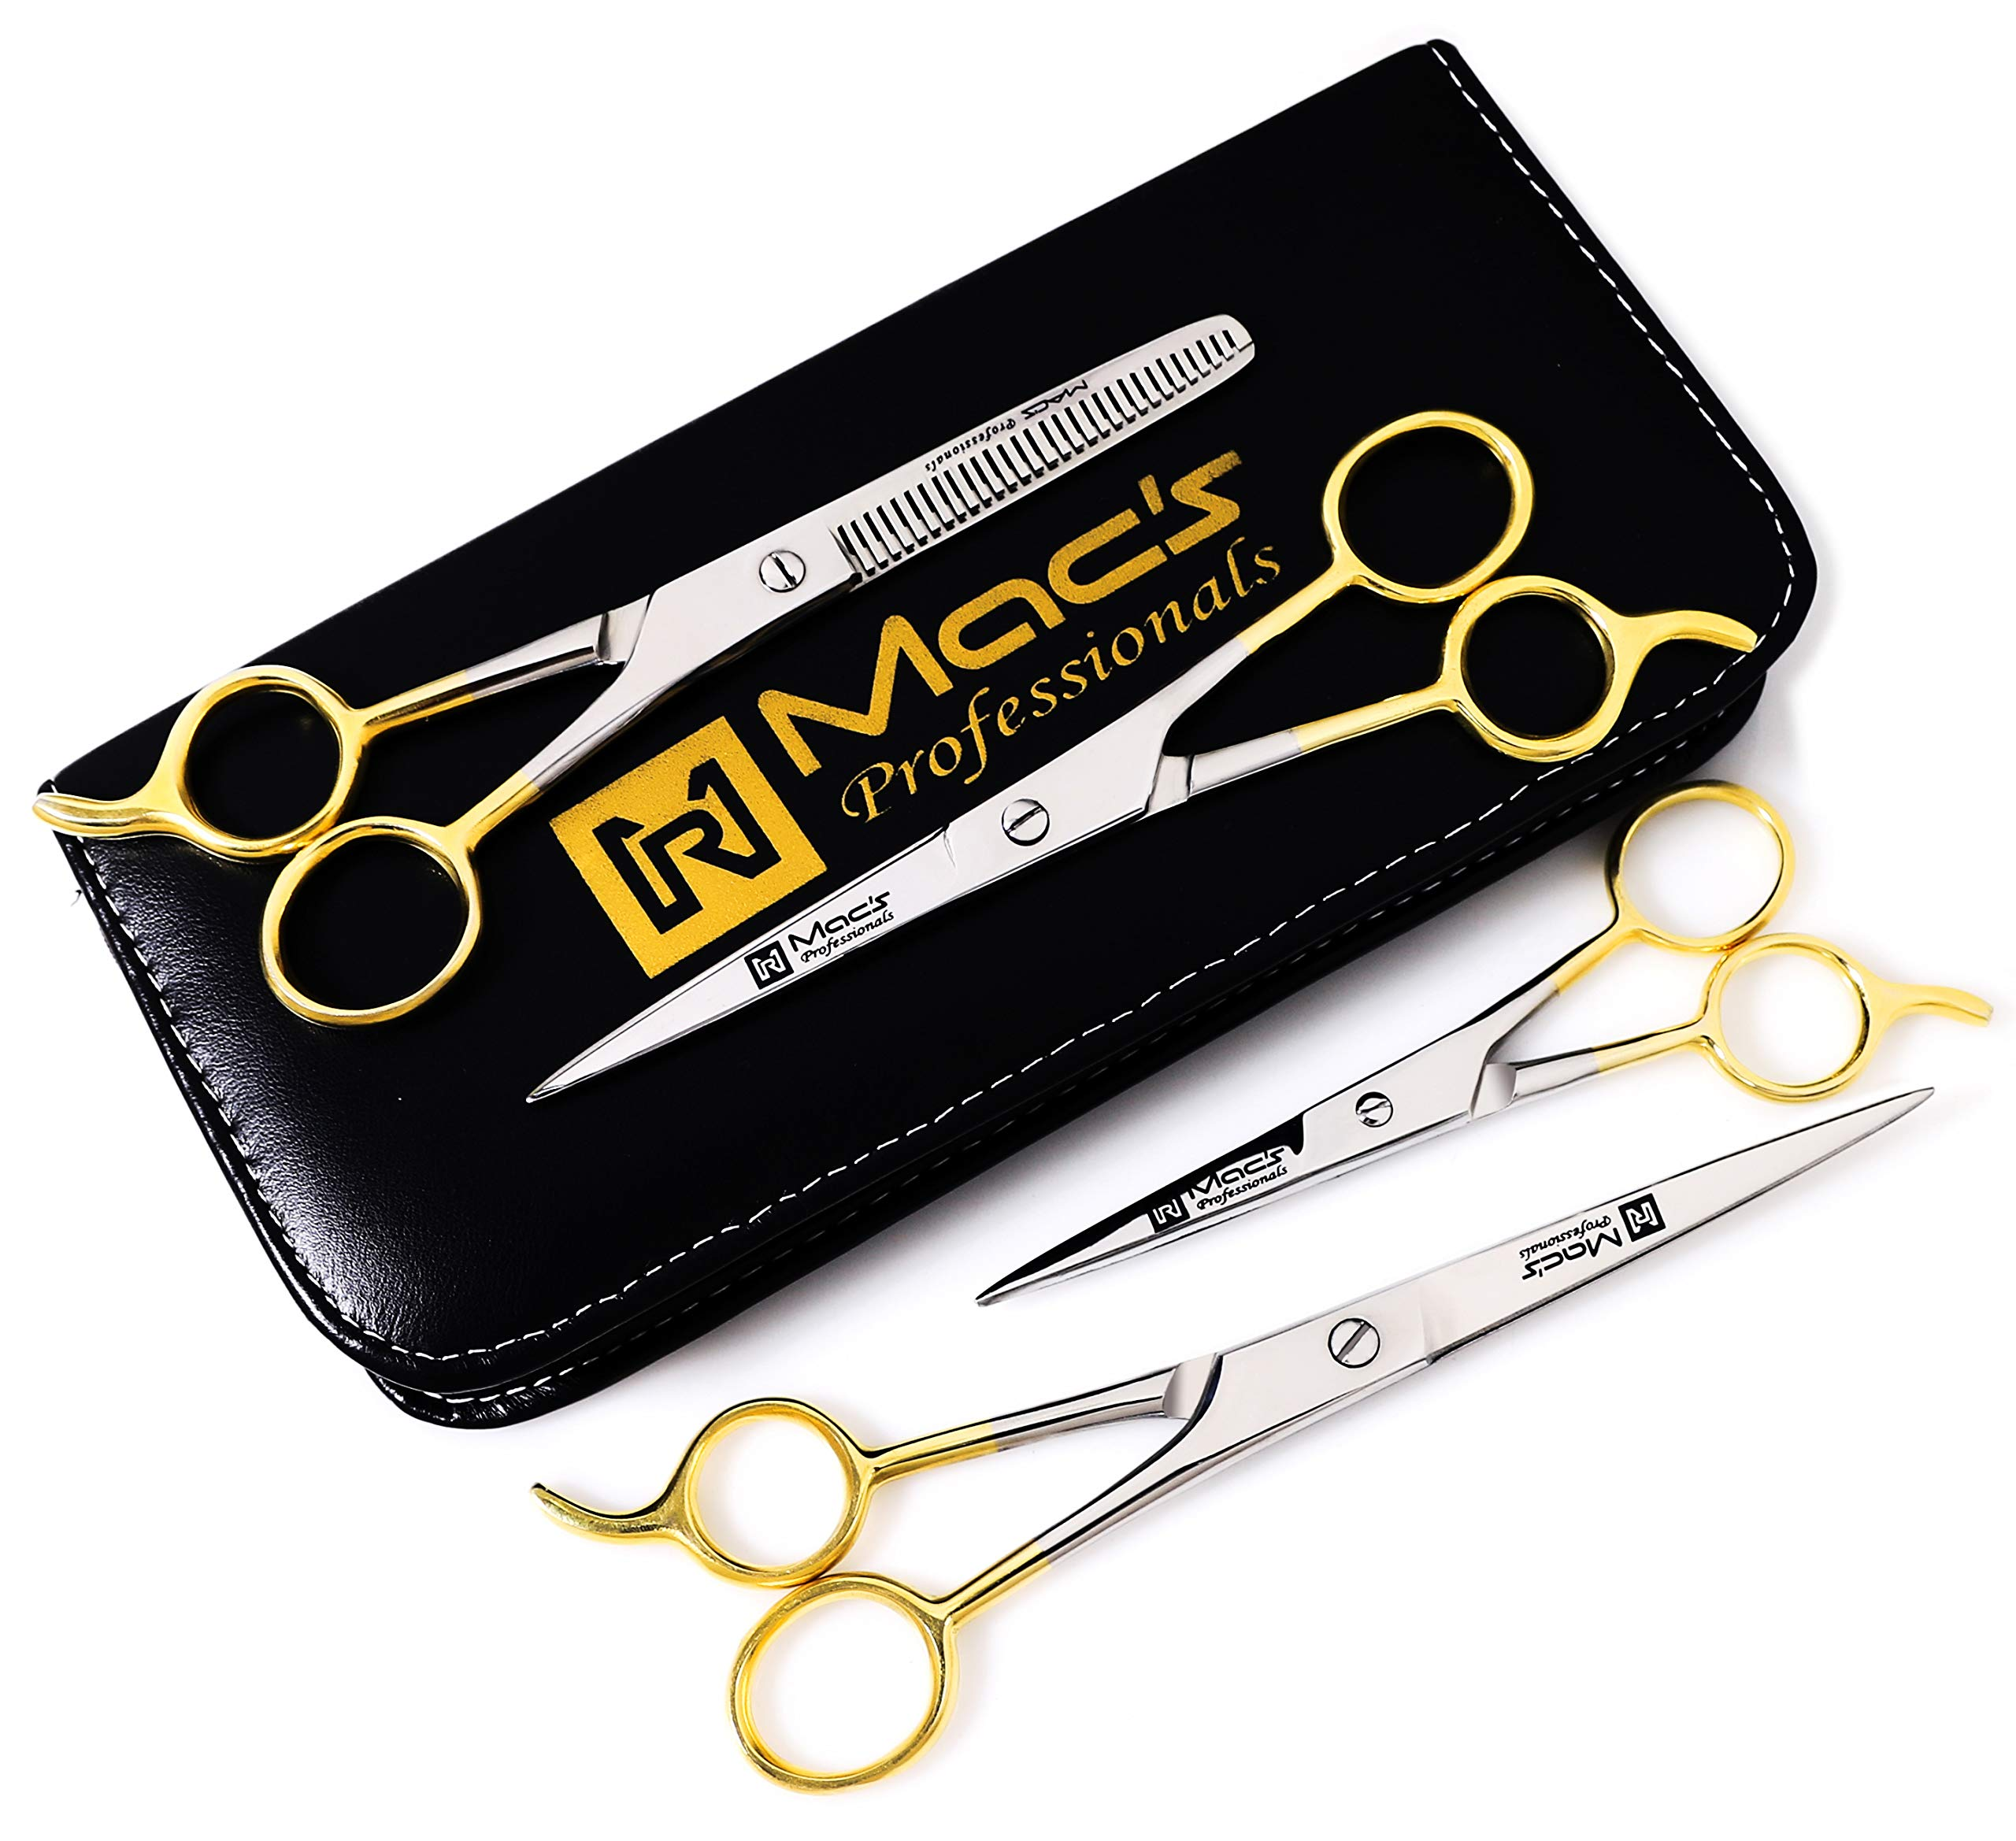 Macs Barber Scissor Hair Cutting Scissors Set Contain 4 Pcs Scissors With Half Gold Plated 5.5'' + 6.5'' +7.5'' With 6.25'' Texturizing /Thinning Shears Set Made Of High Grade Stainles Steel with Free Black Leather Case-15001 by Macs Razor Products (Image #2)